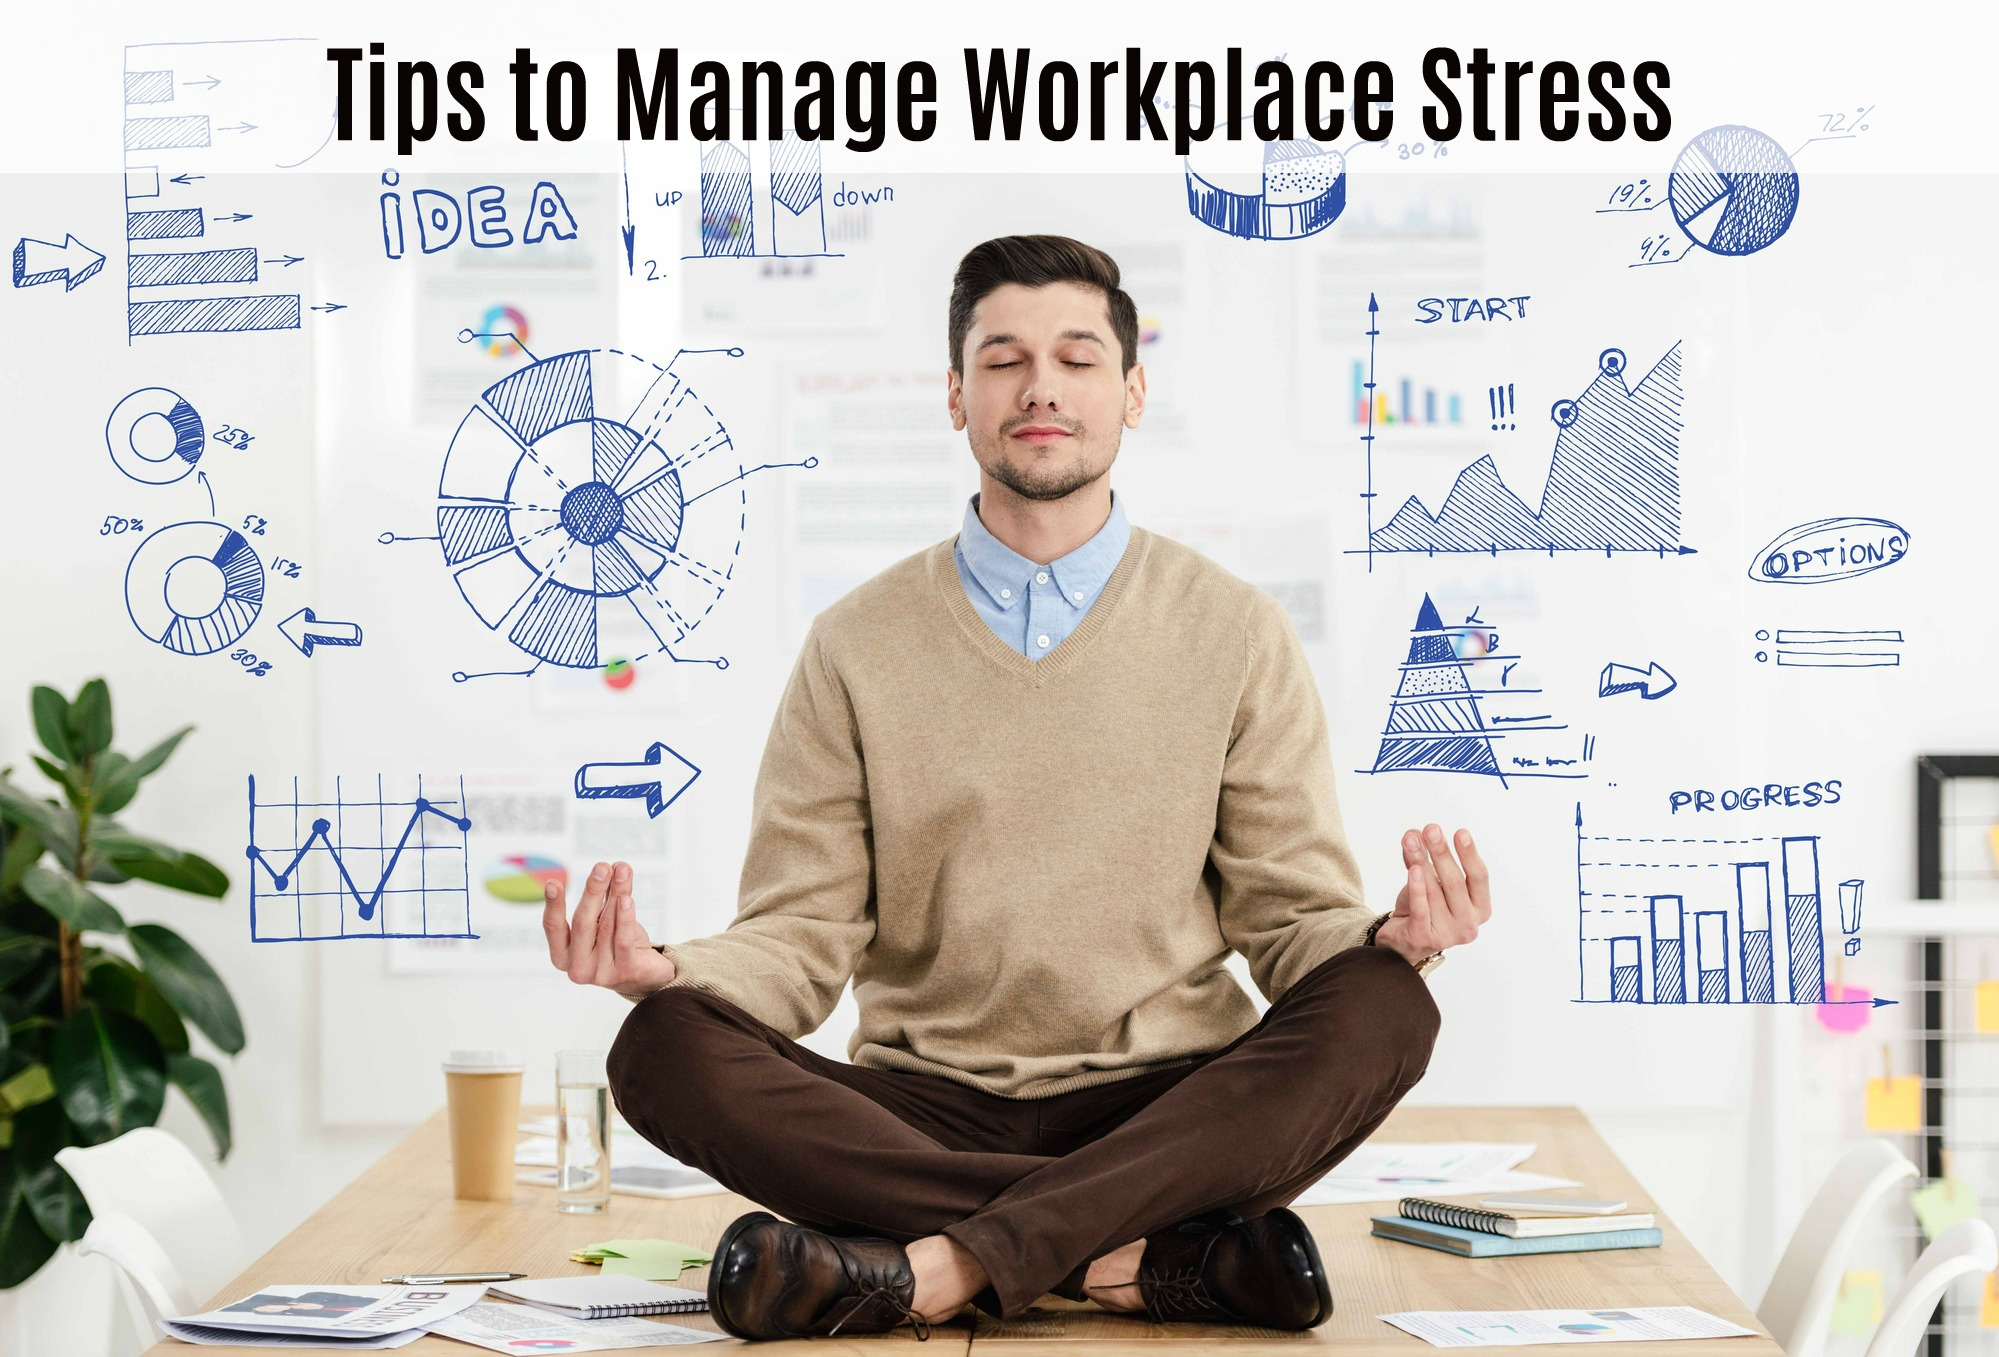 Tips-to-manage-workplace-stress.jpg